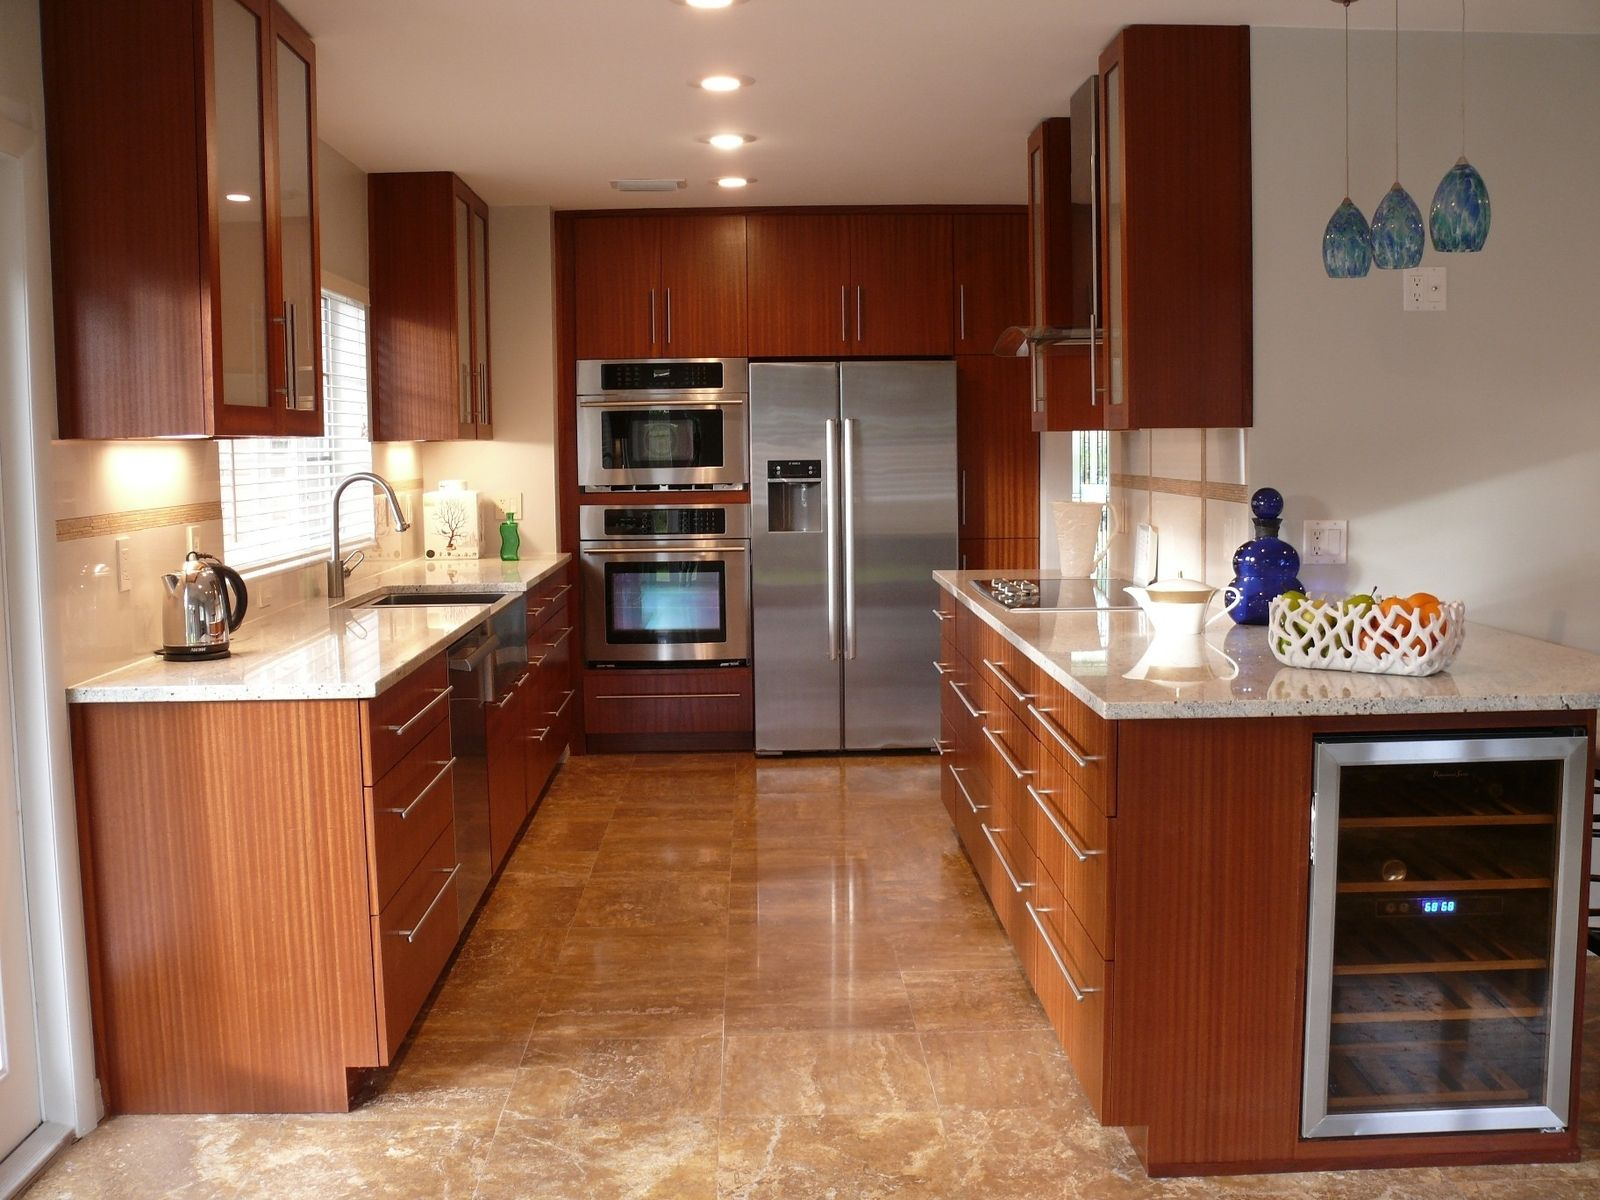 Custom Modern Kitchen Cabinets Beautiful Custom Modern Kitchen Cabinets Modular Cupboard And Decor